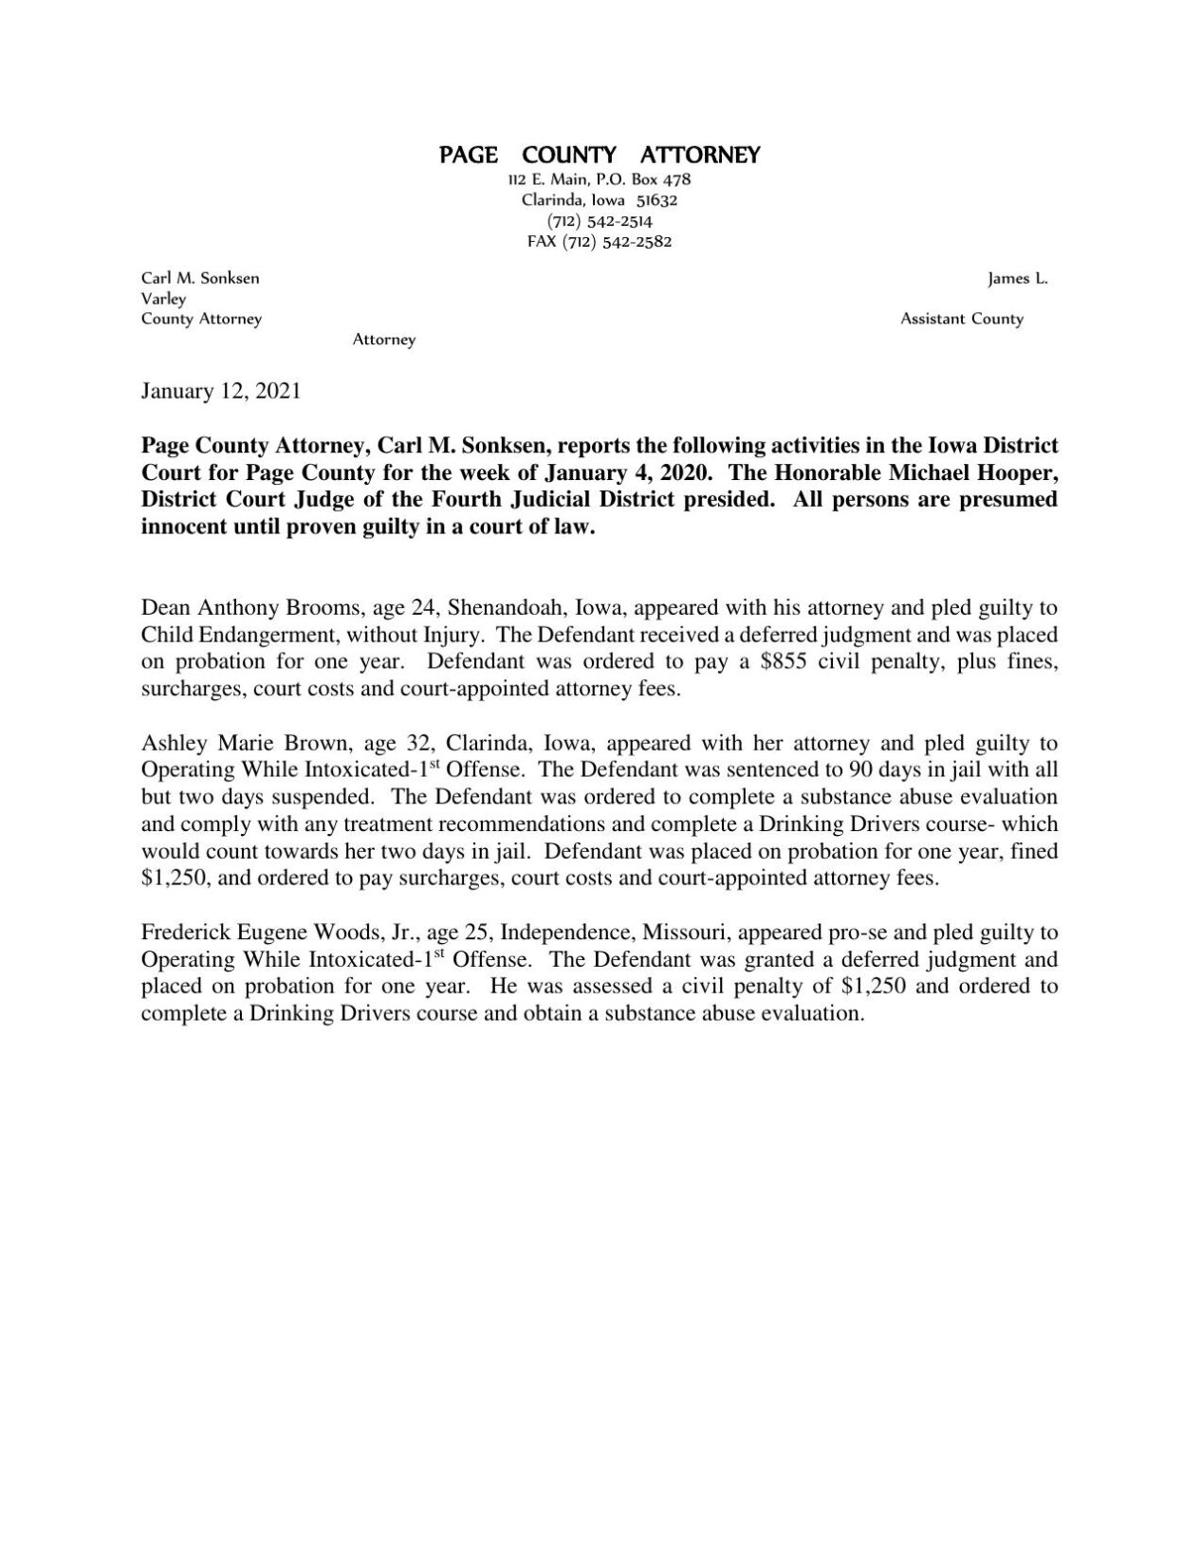 Page County Attorney's Report 1/13/2021